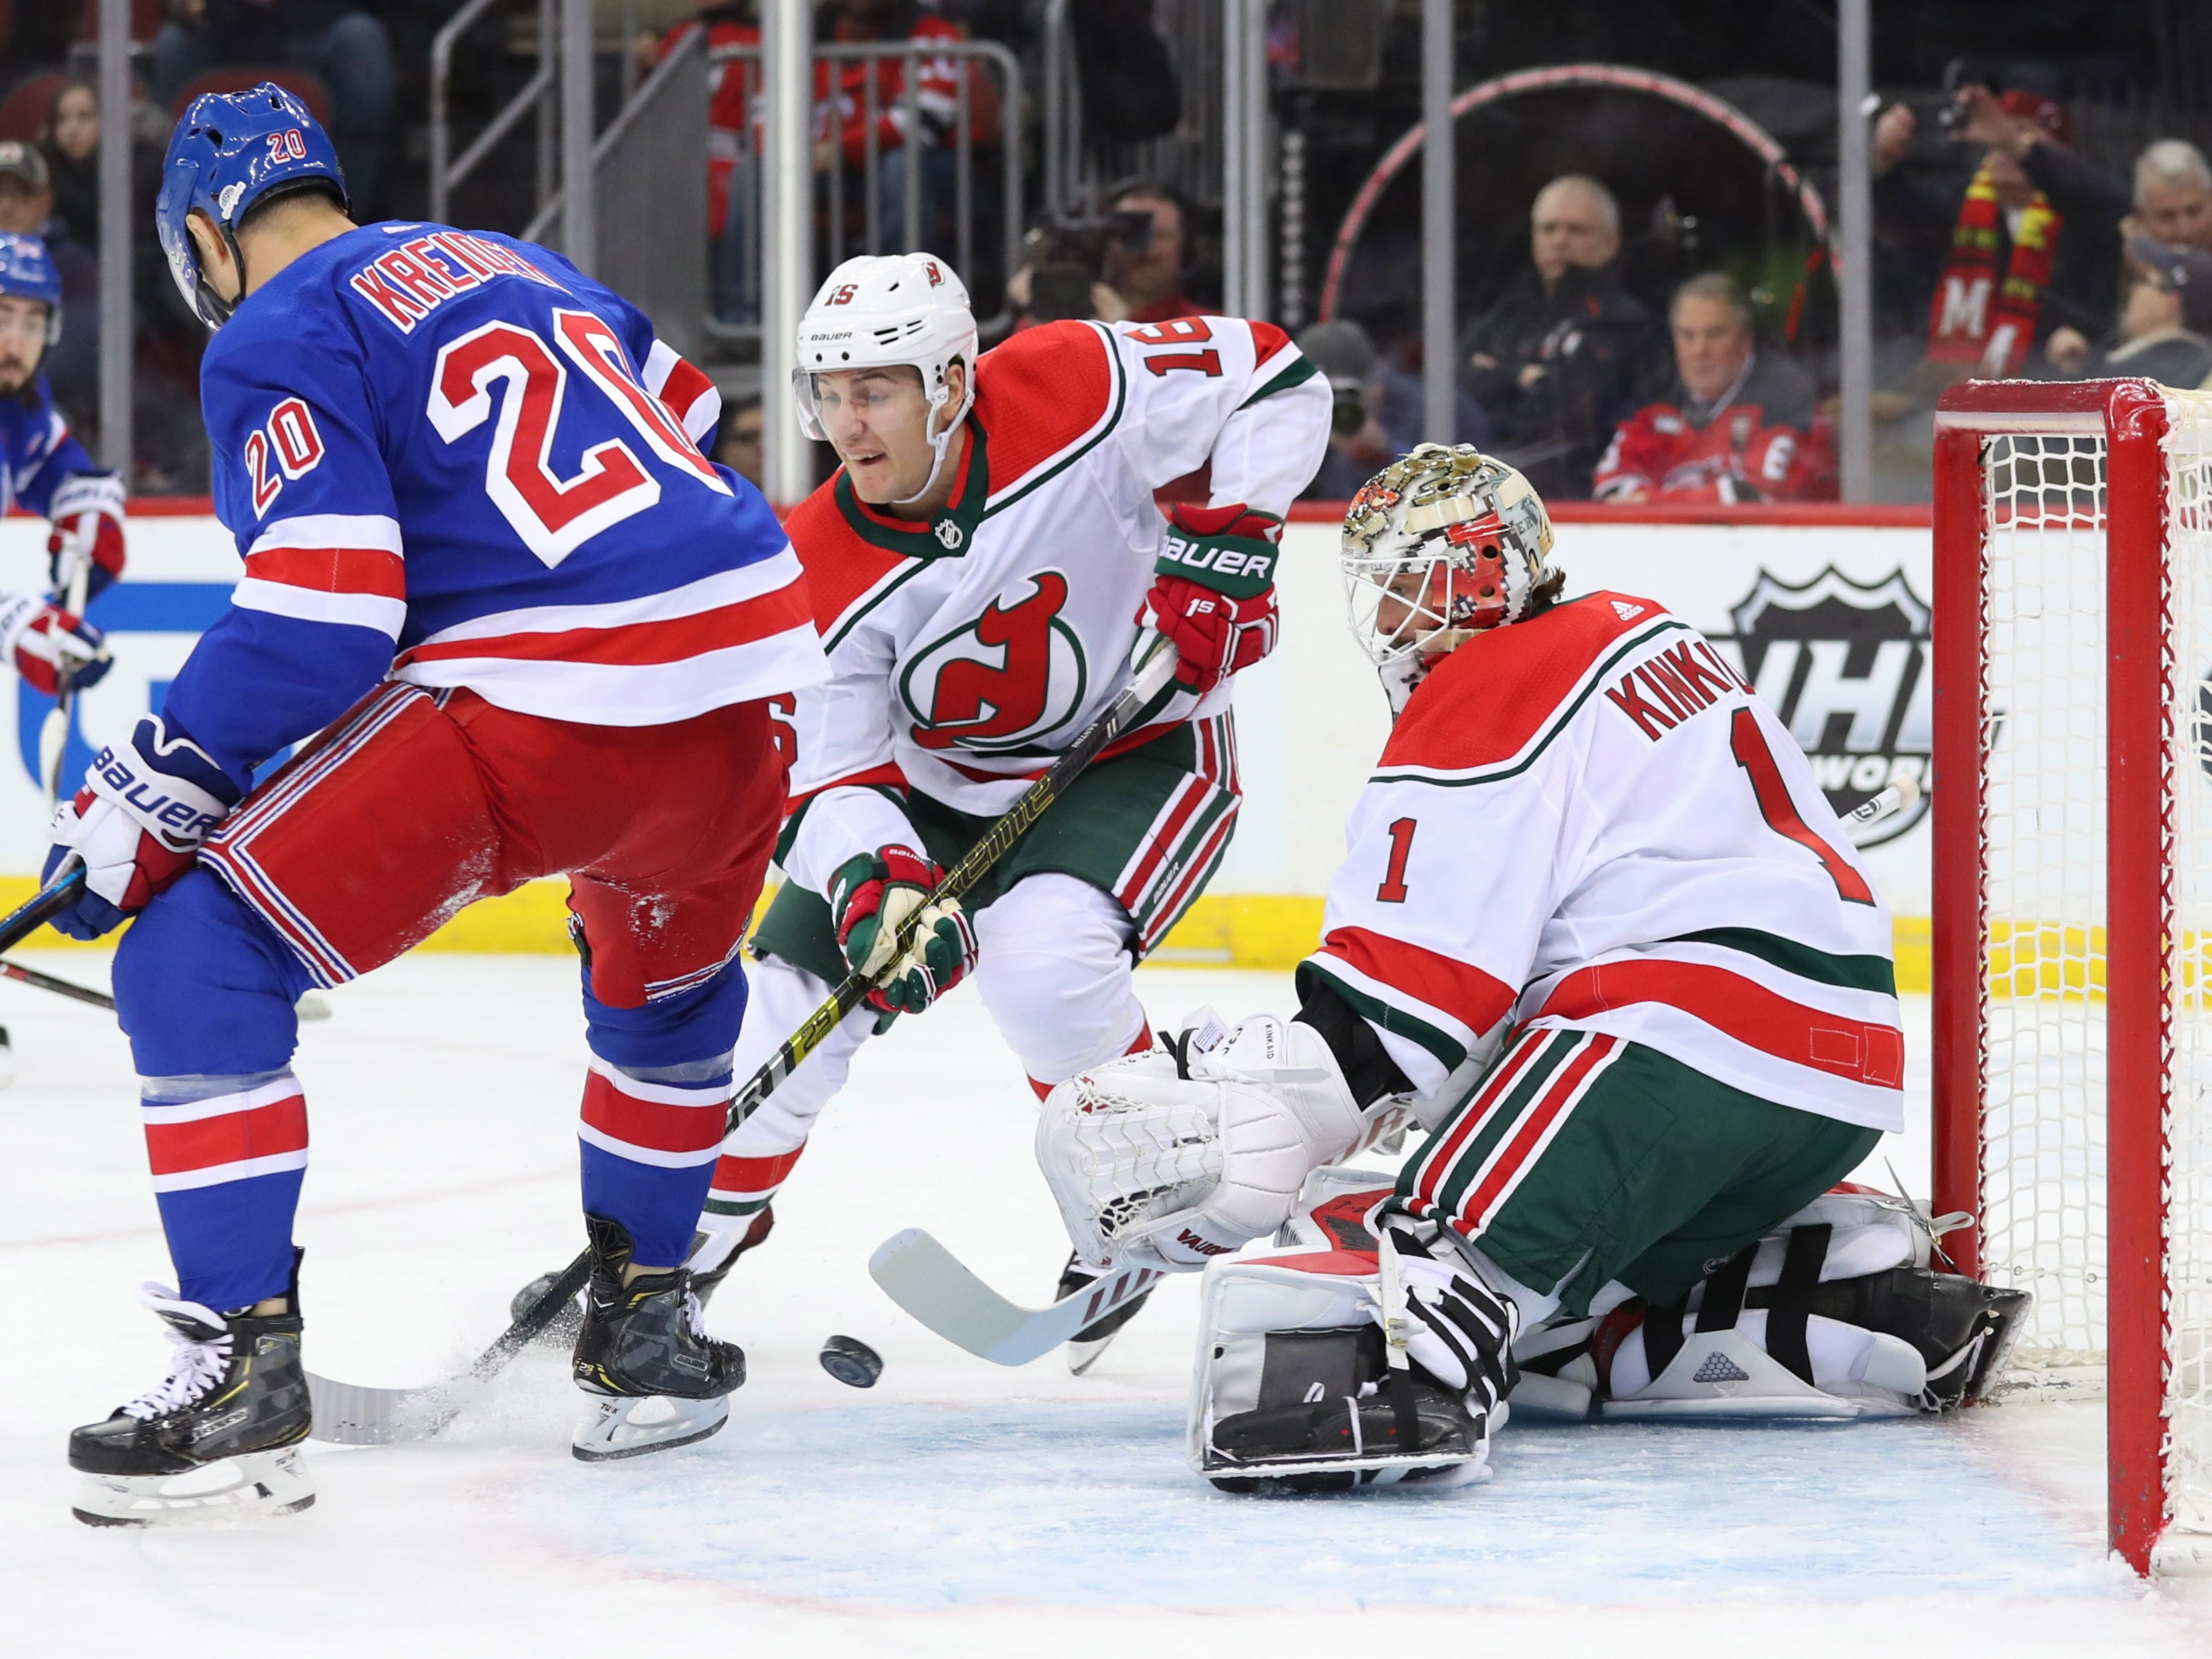 Jan 31, 2019; Newark, NJ, USA; New Jersey Devils goaltender Keith Kinkaid (1) makes a save while New York Rangers left wing Chris Kreider (20) and New Jersey Devils defenseman Steven Santini (16) battle for the loose puck during the first period at Prudential Center.